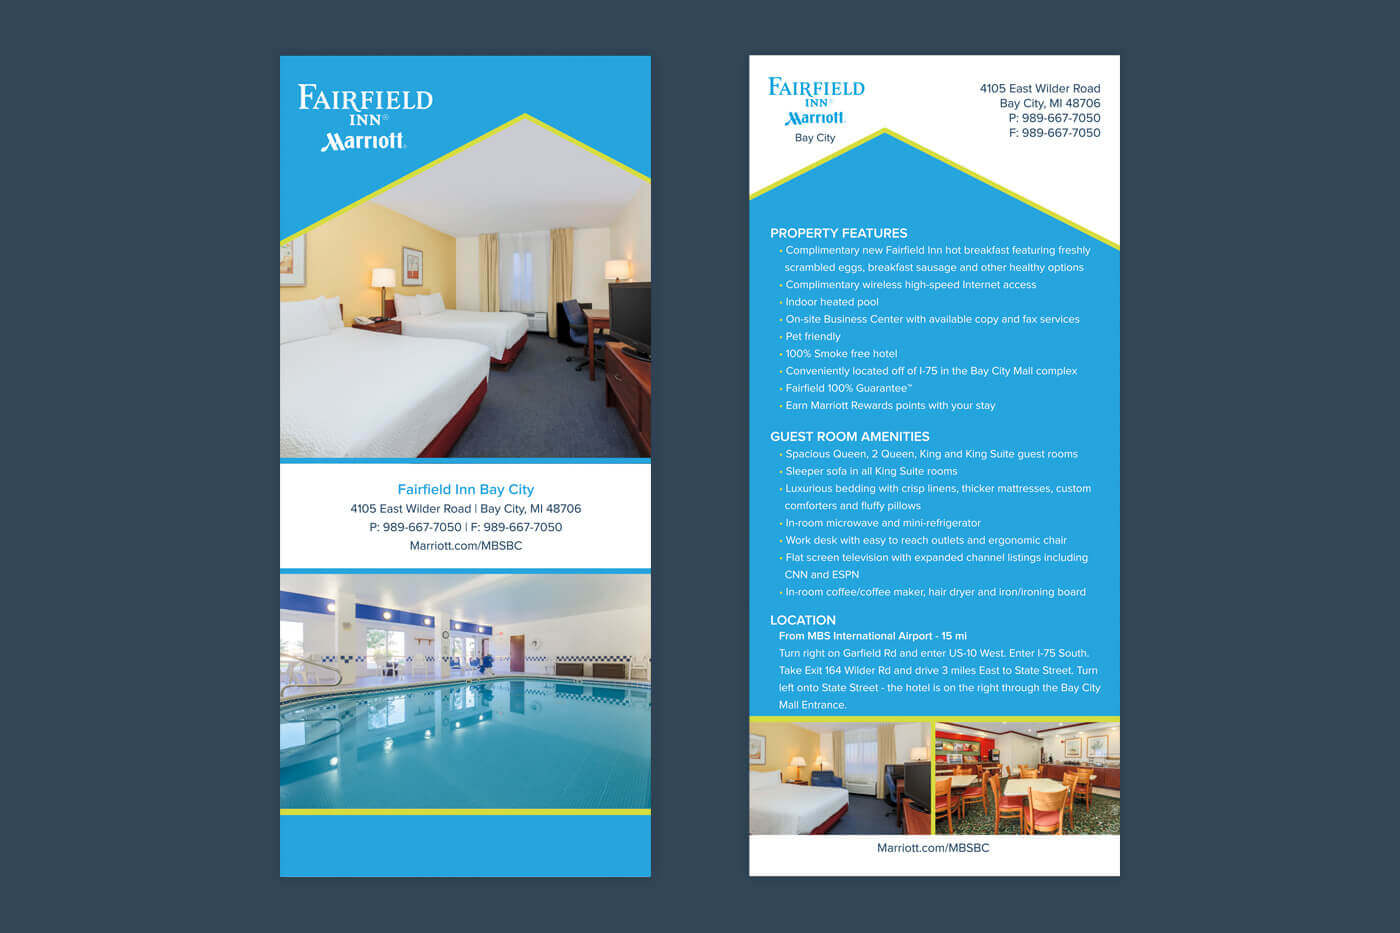 Marketing Collateral - Fairfield Inn Bay City Rackcard